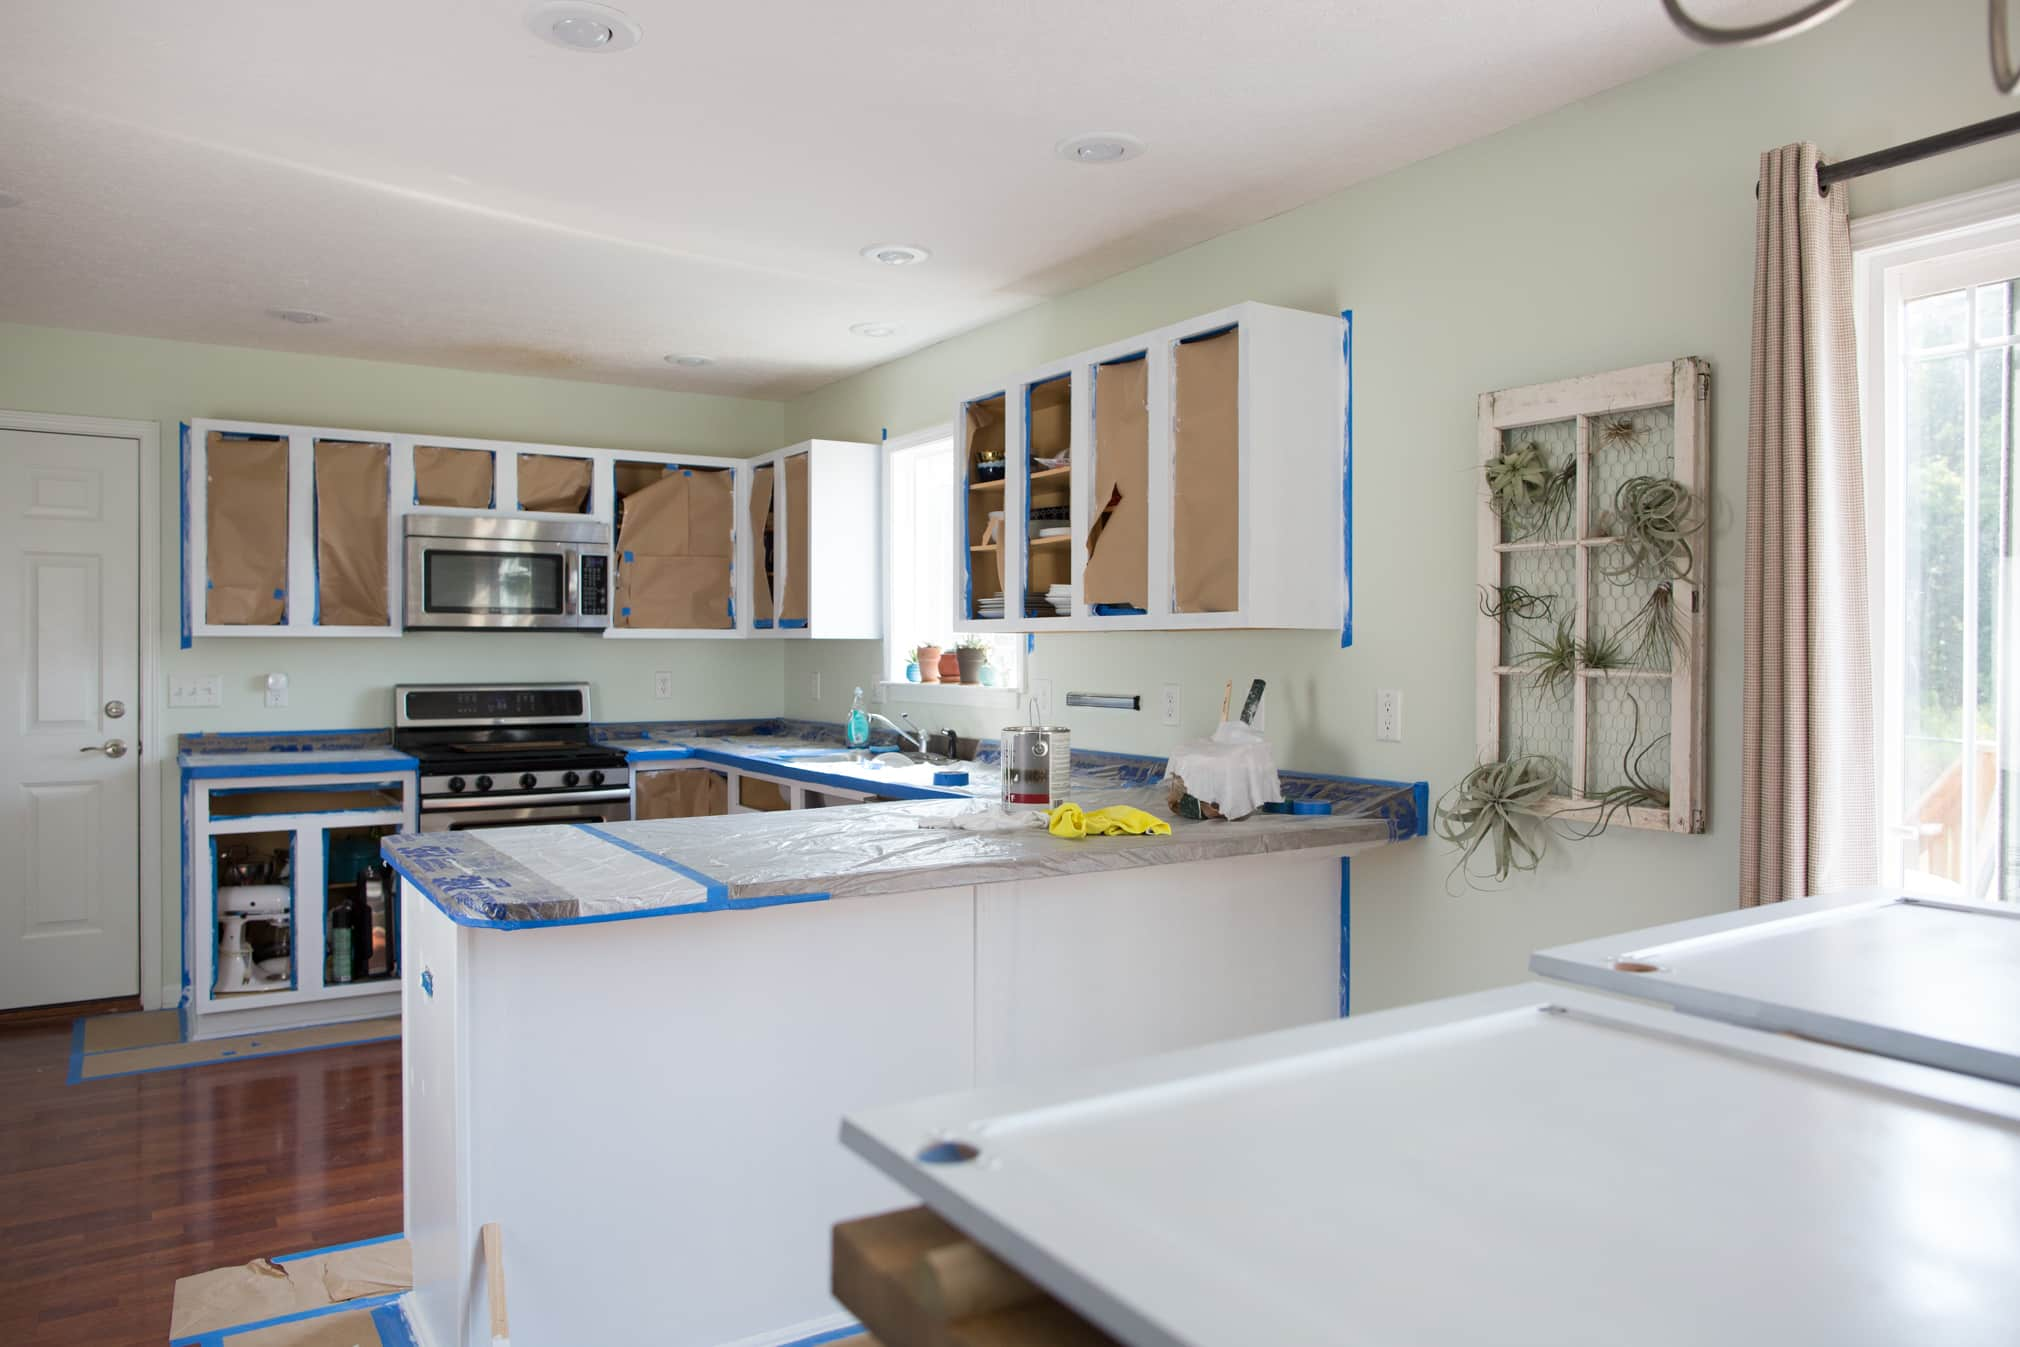 here s what it costs to paint kitchen cabinets and to have them painted by someone else kitchn. Black Bedroom Furniture Sets. Home Design Ideas